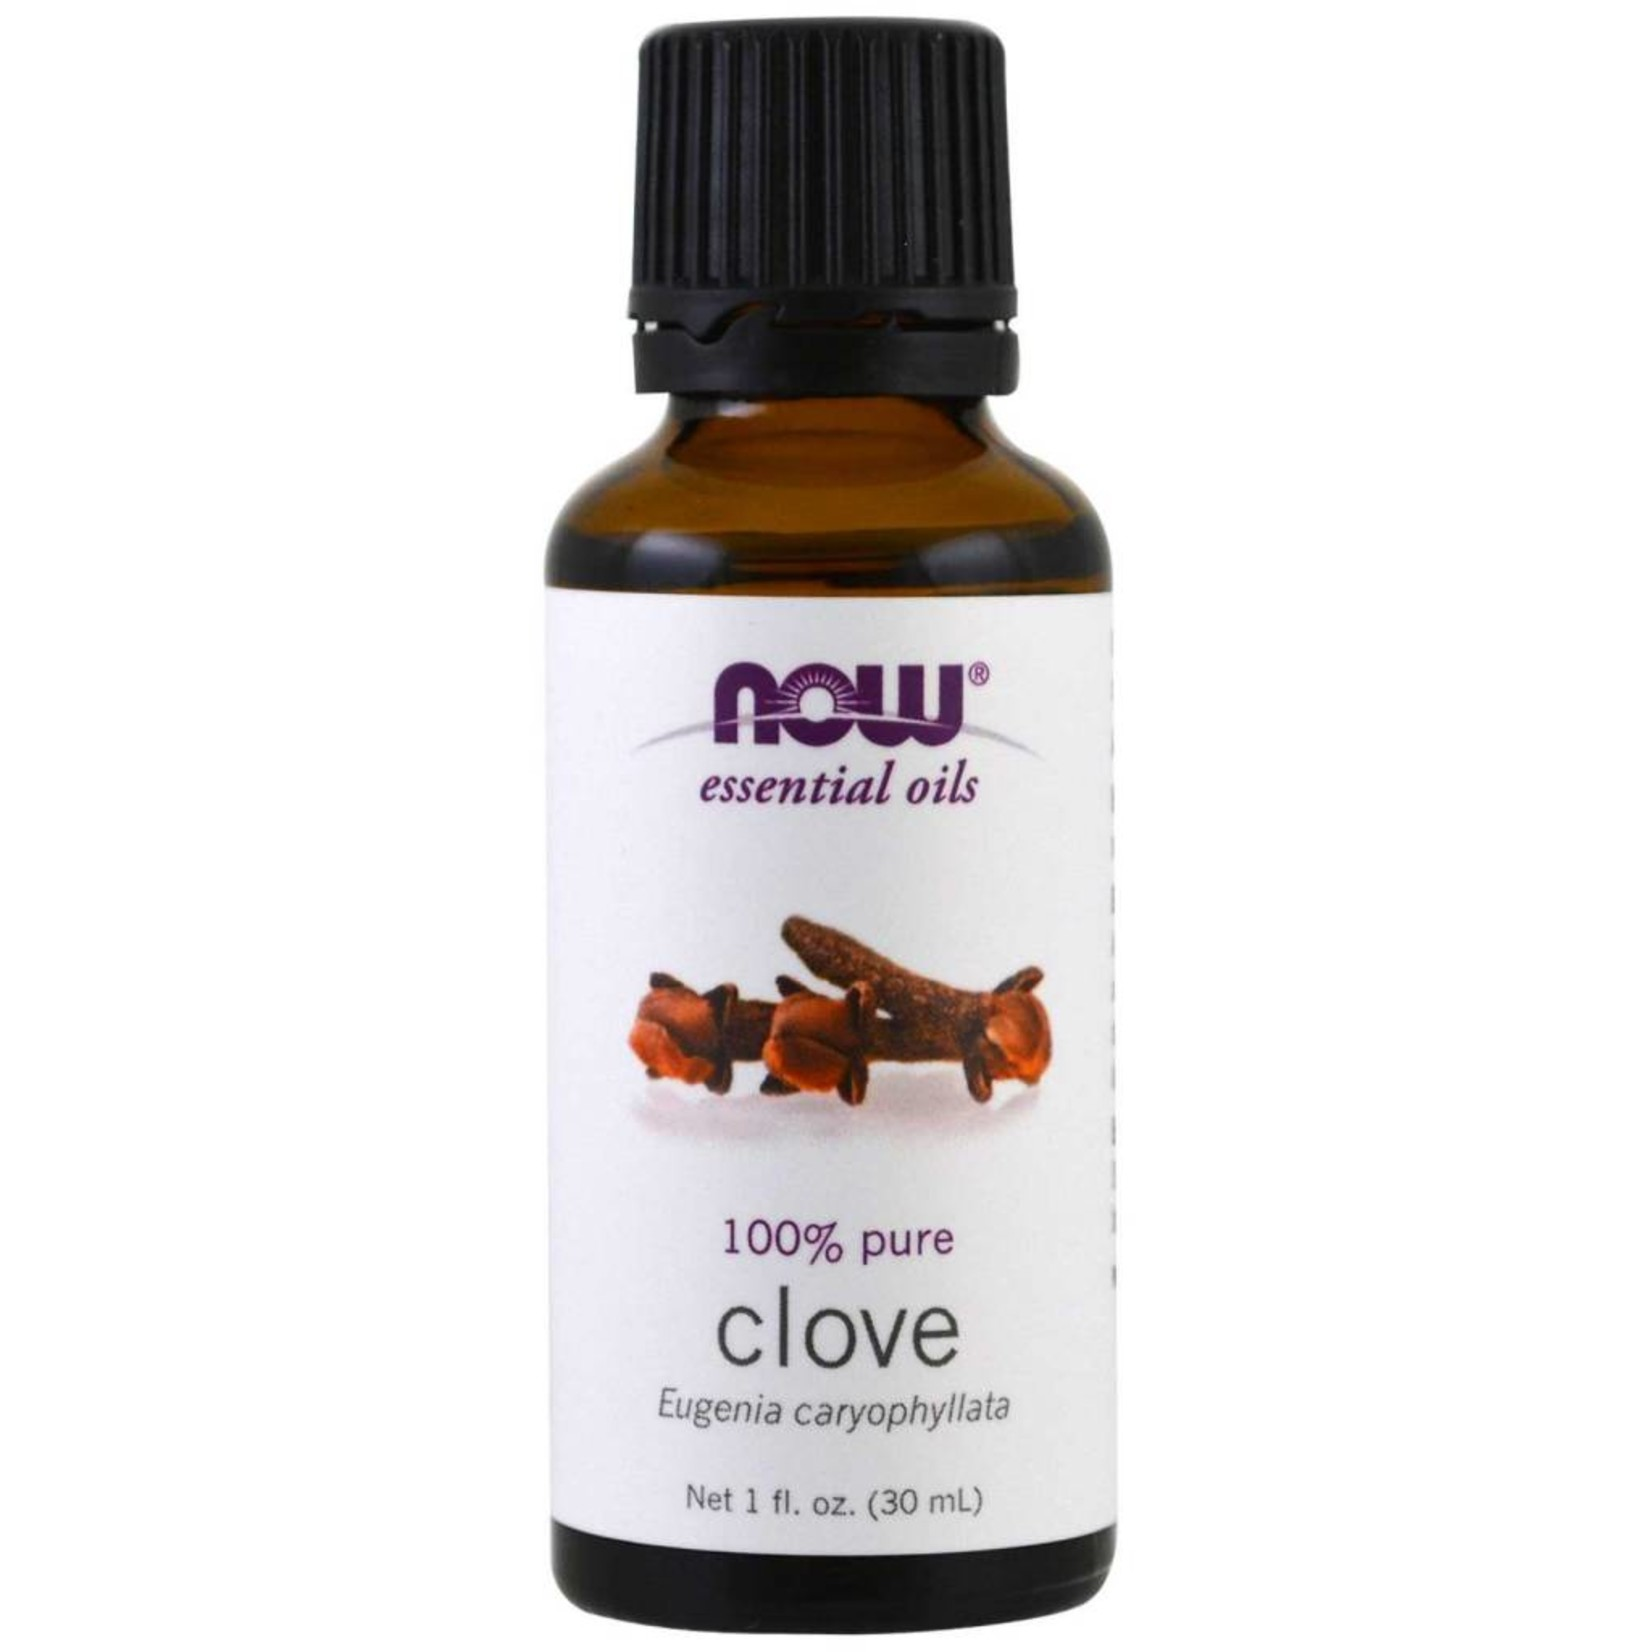 NOW NOW Clove Oil 30mL